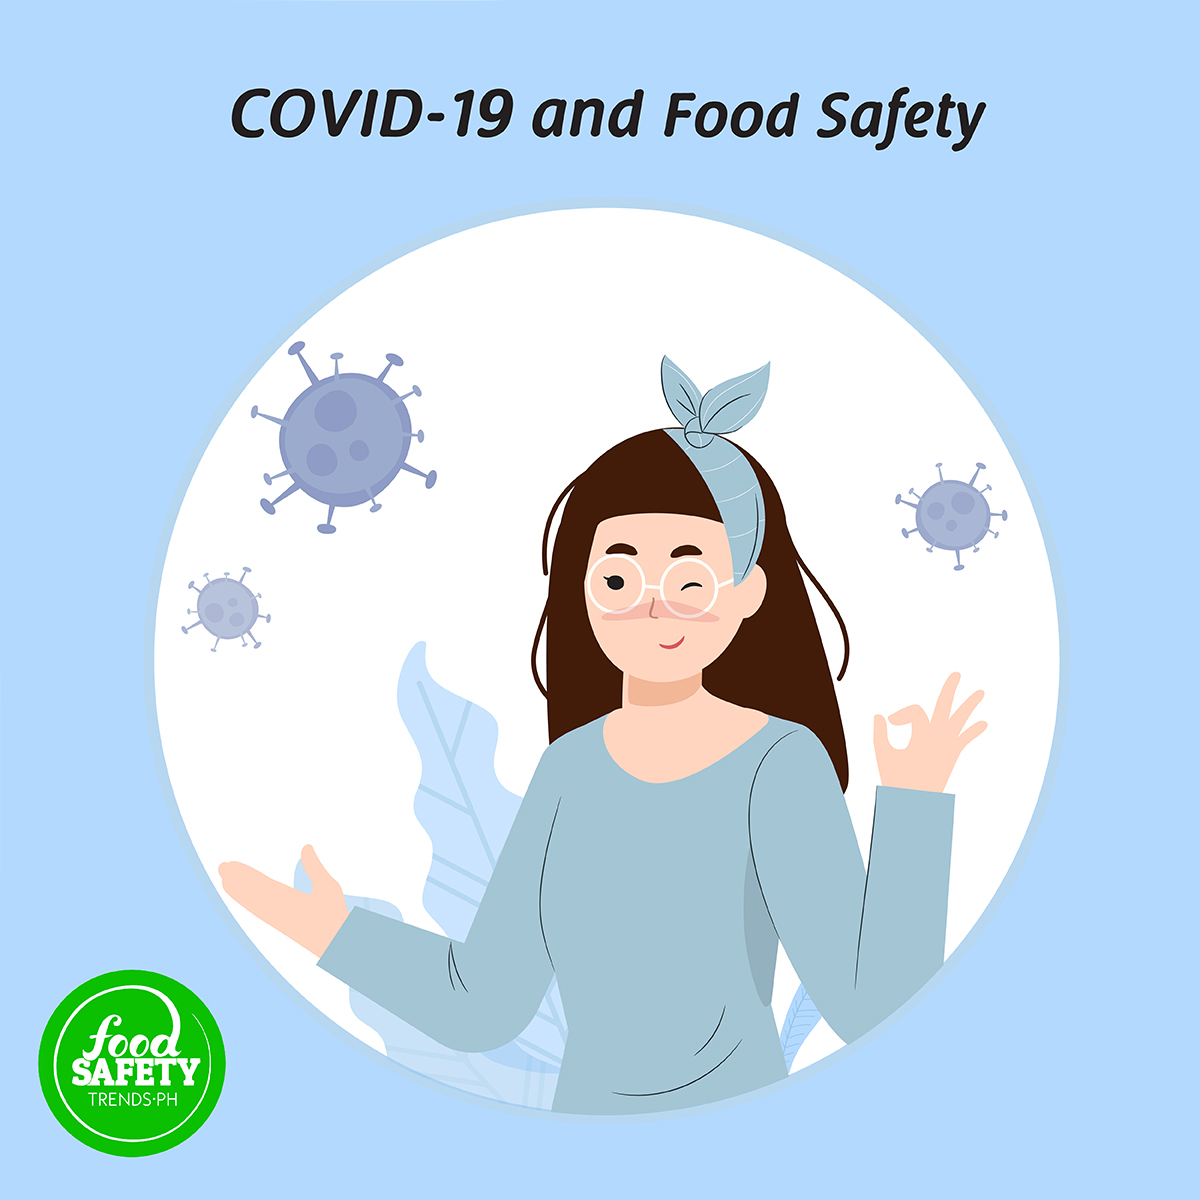 COVID-19 and Food Safety